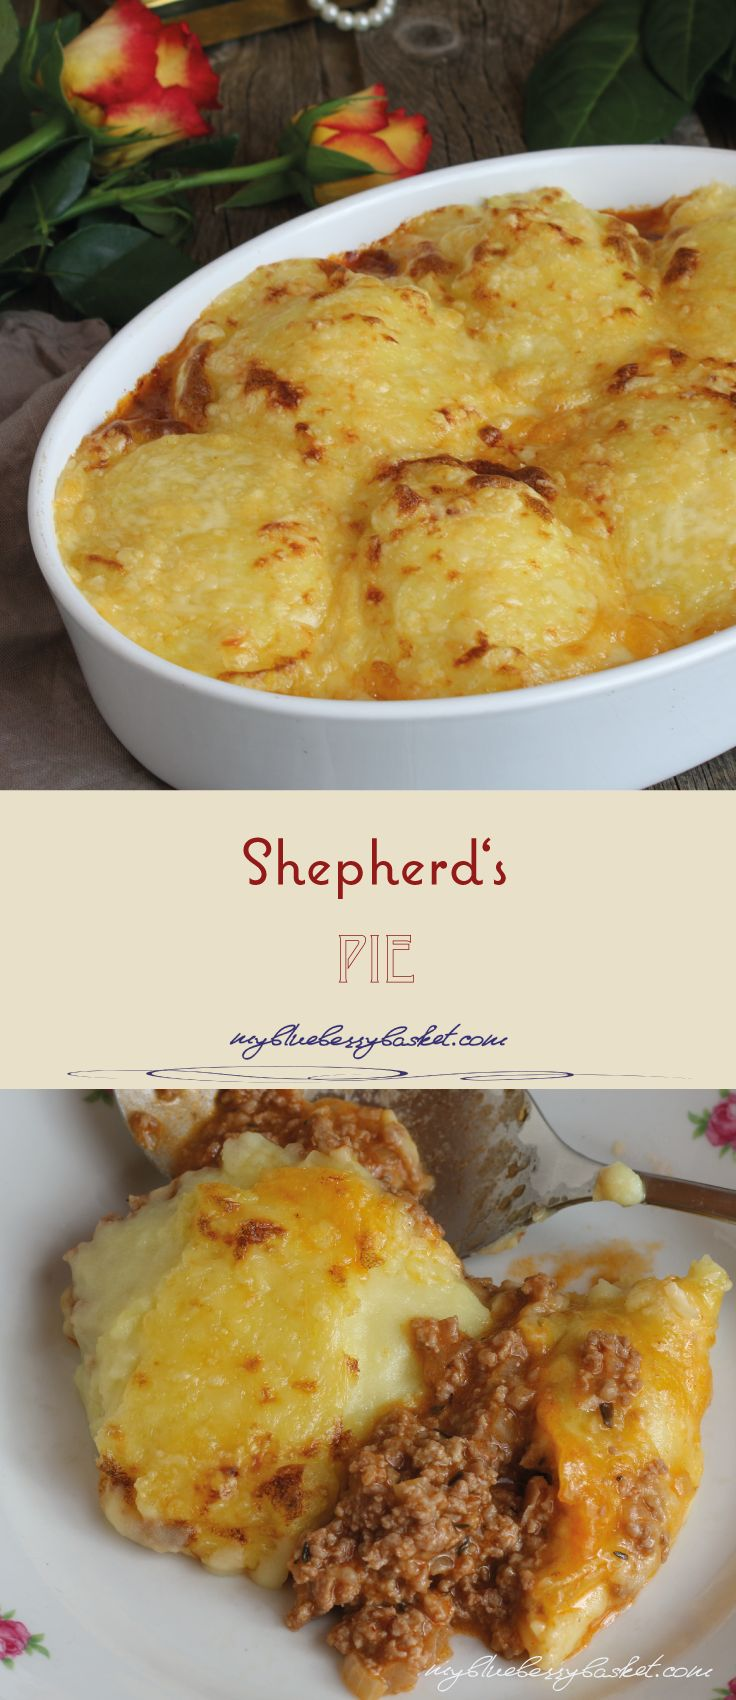 Shepherd's Pie, the traditional English comfort food, consisting of beef, gravy, potato mash and cheese. An all-time favorite for everyone.